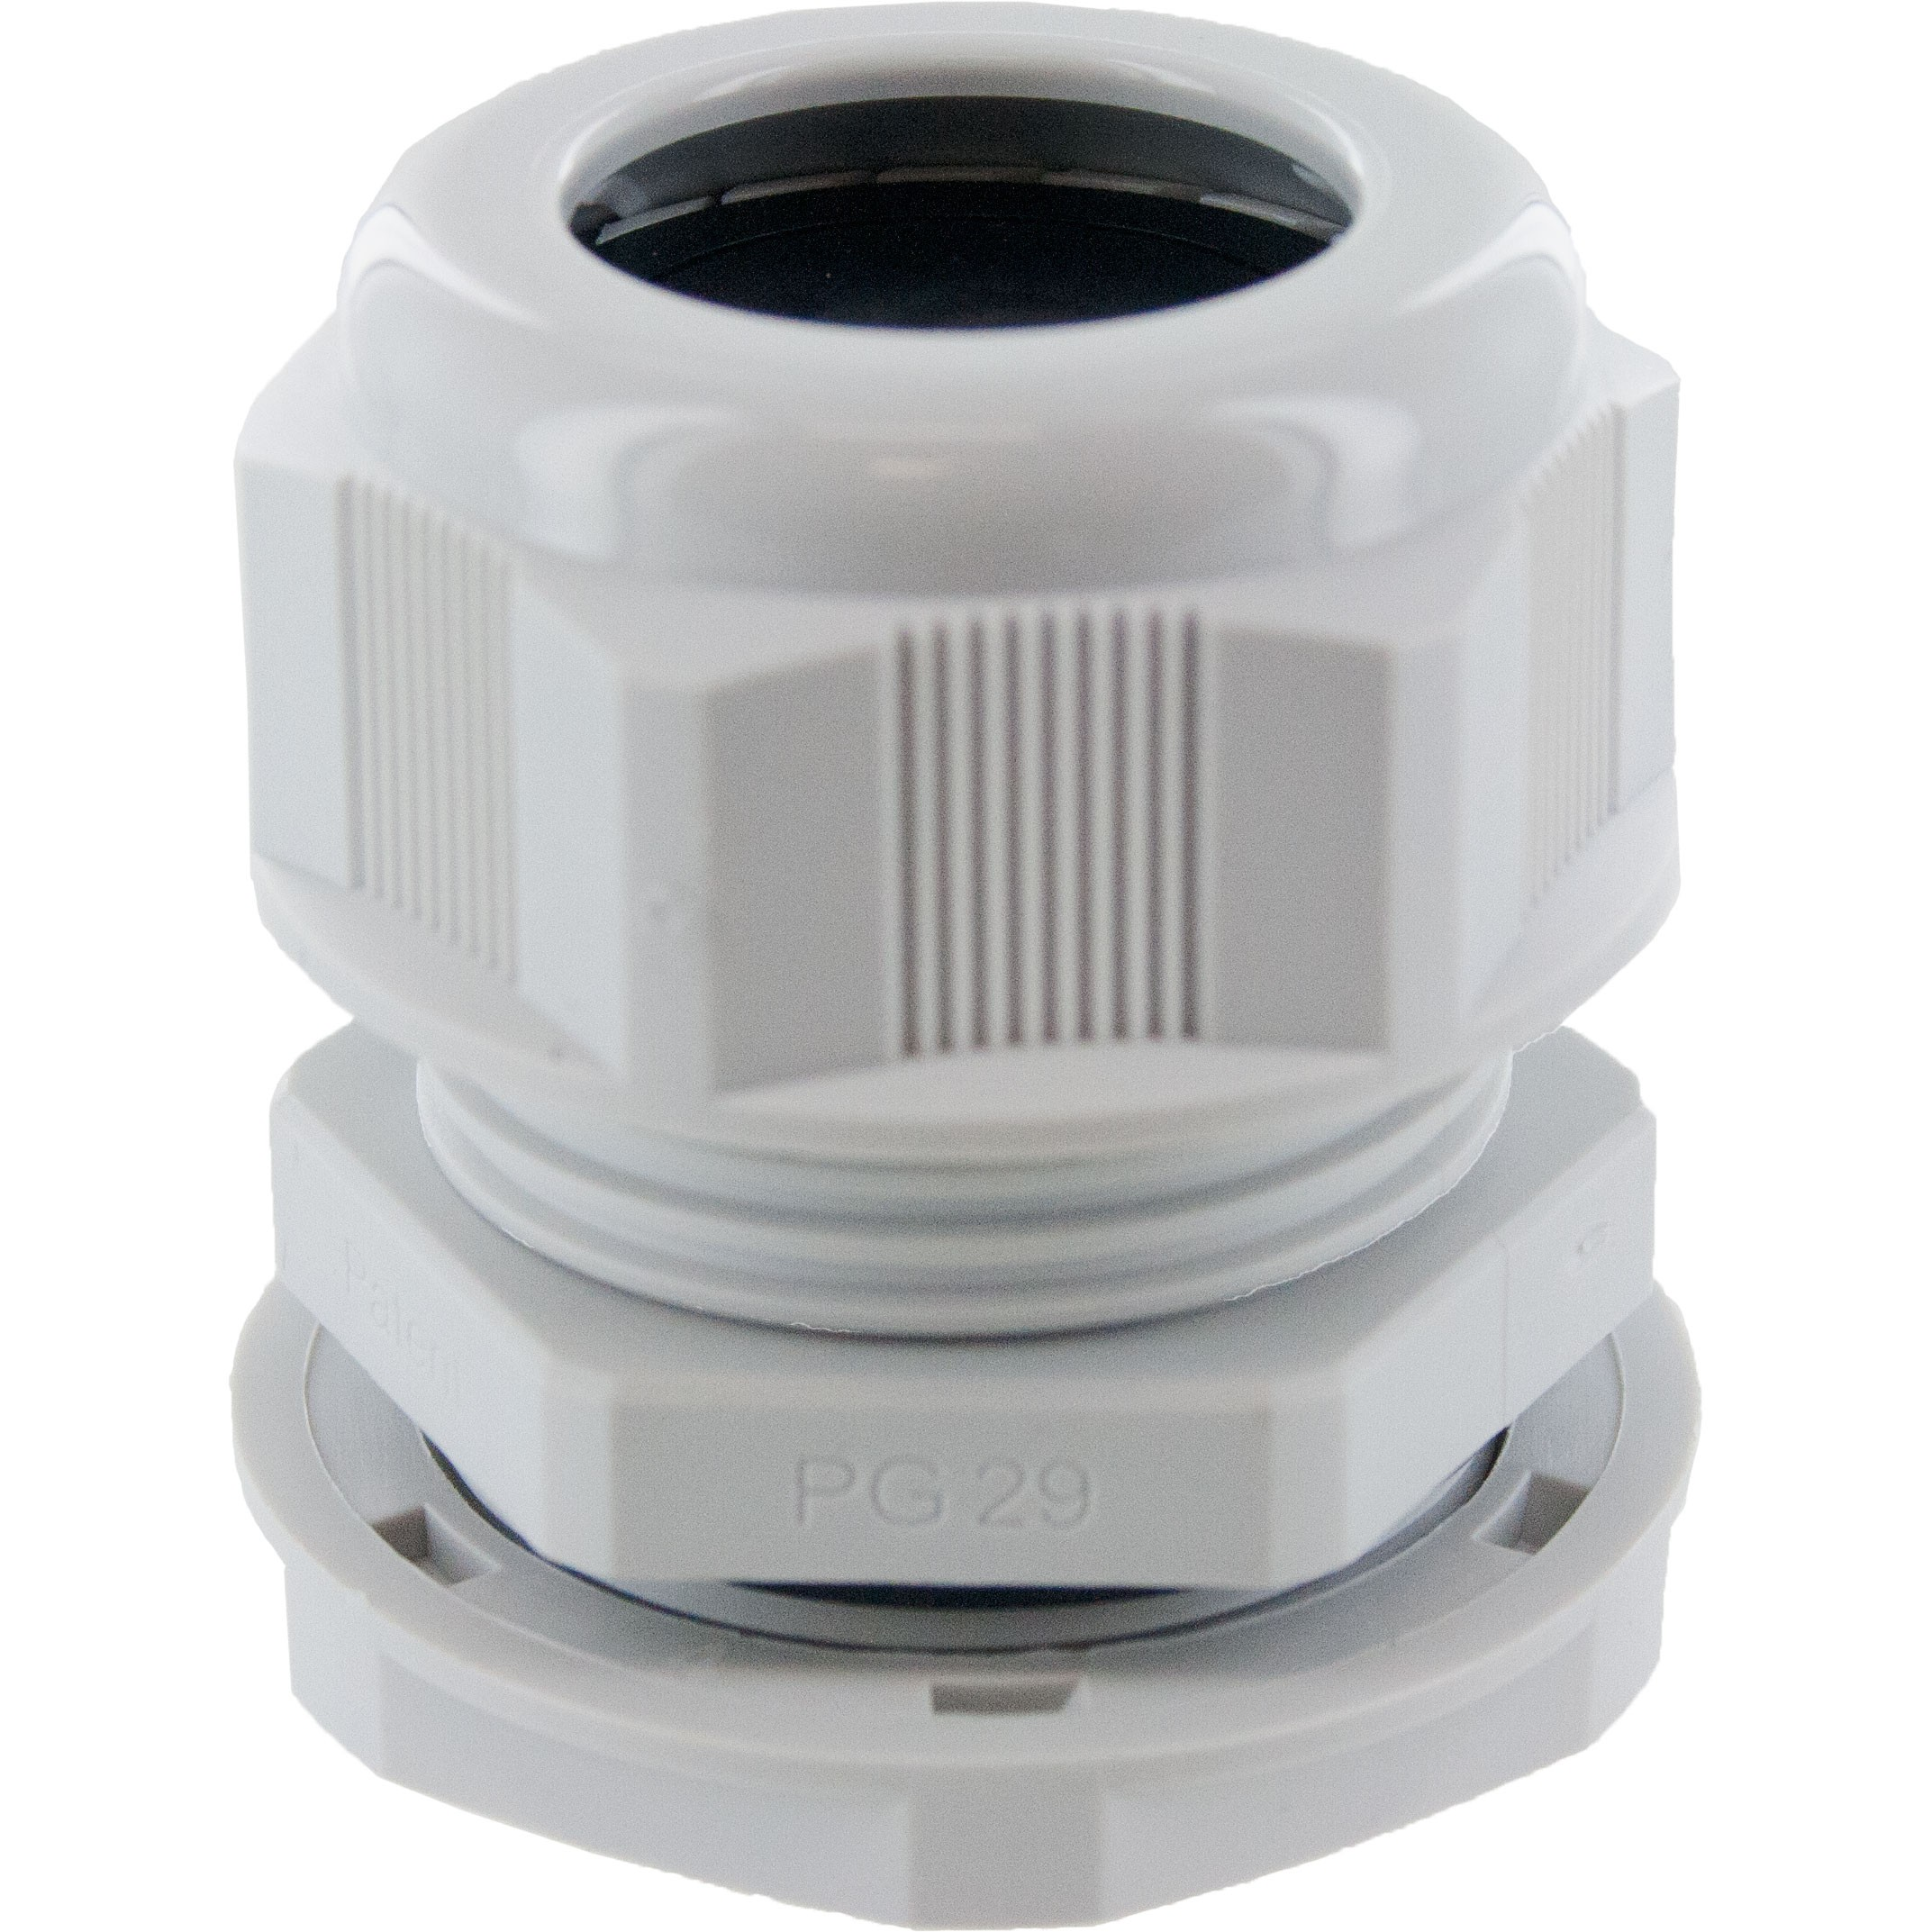 Pg29 Nylon Dome Cap Cable Gland Rdc29ar Gr Elecdirect Pollak Lightduty Toggle Switch Onoff 12 Volt 10 Amp 6quot Wire Gray